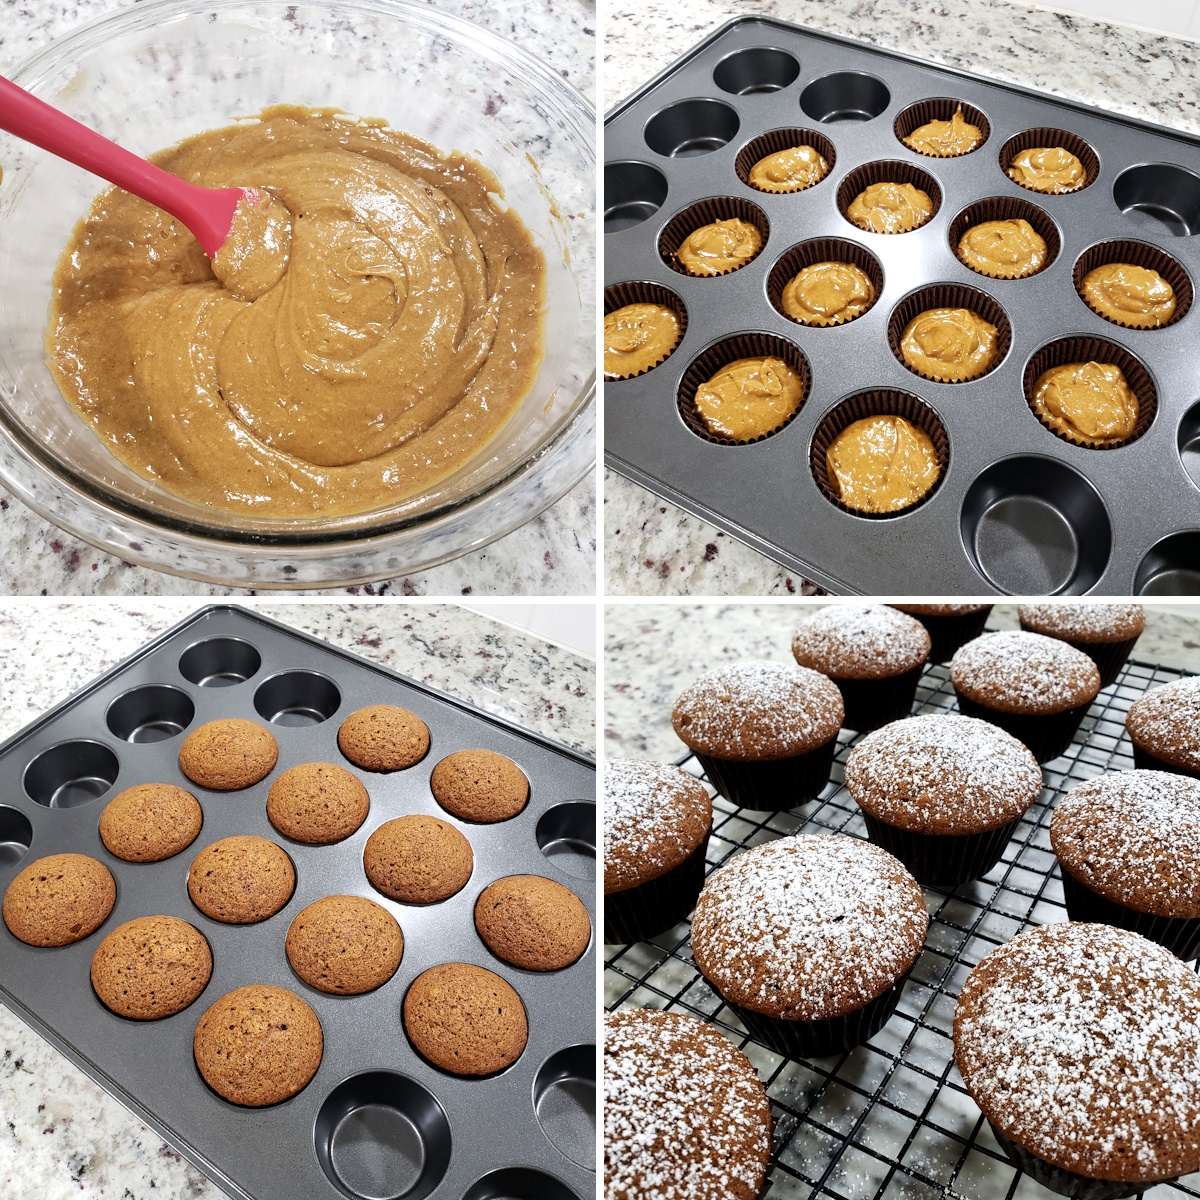 Baking gingerbread muffins in a muffin pan.